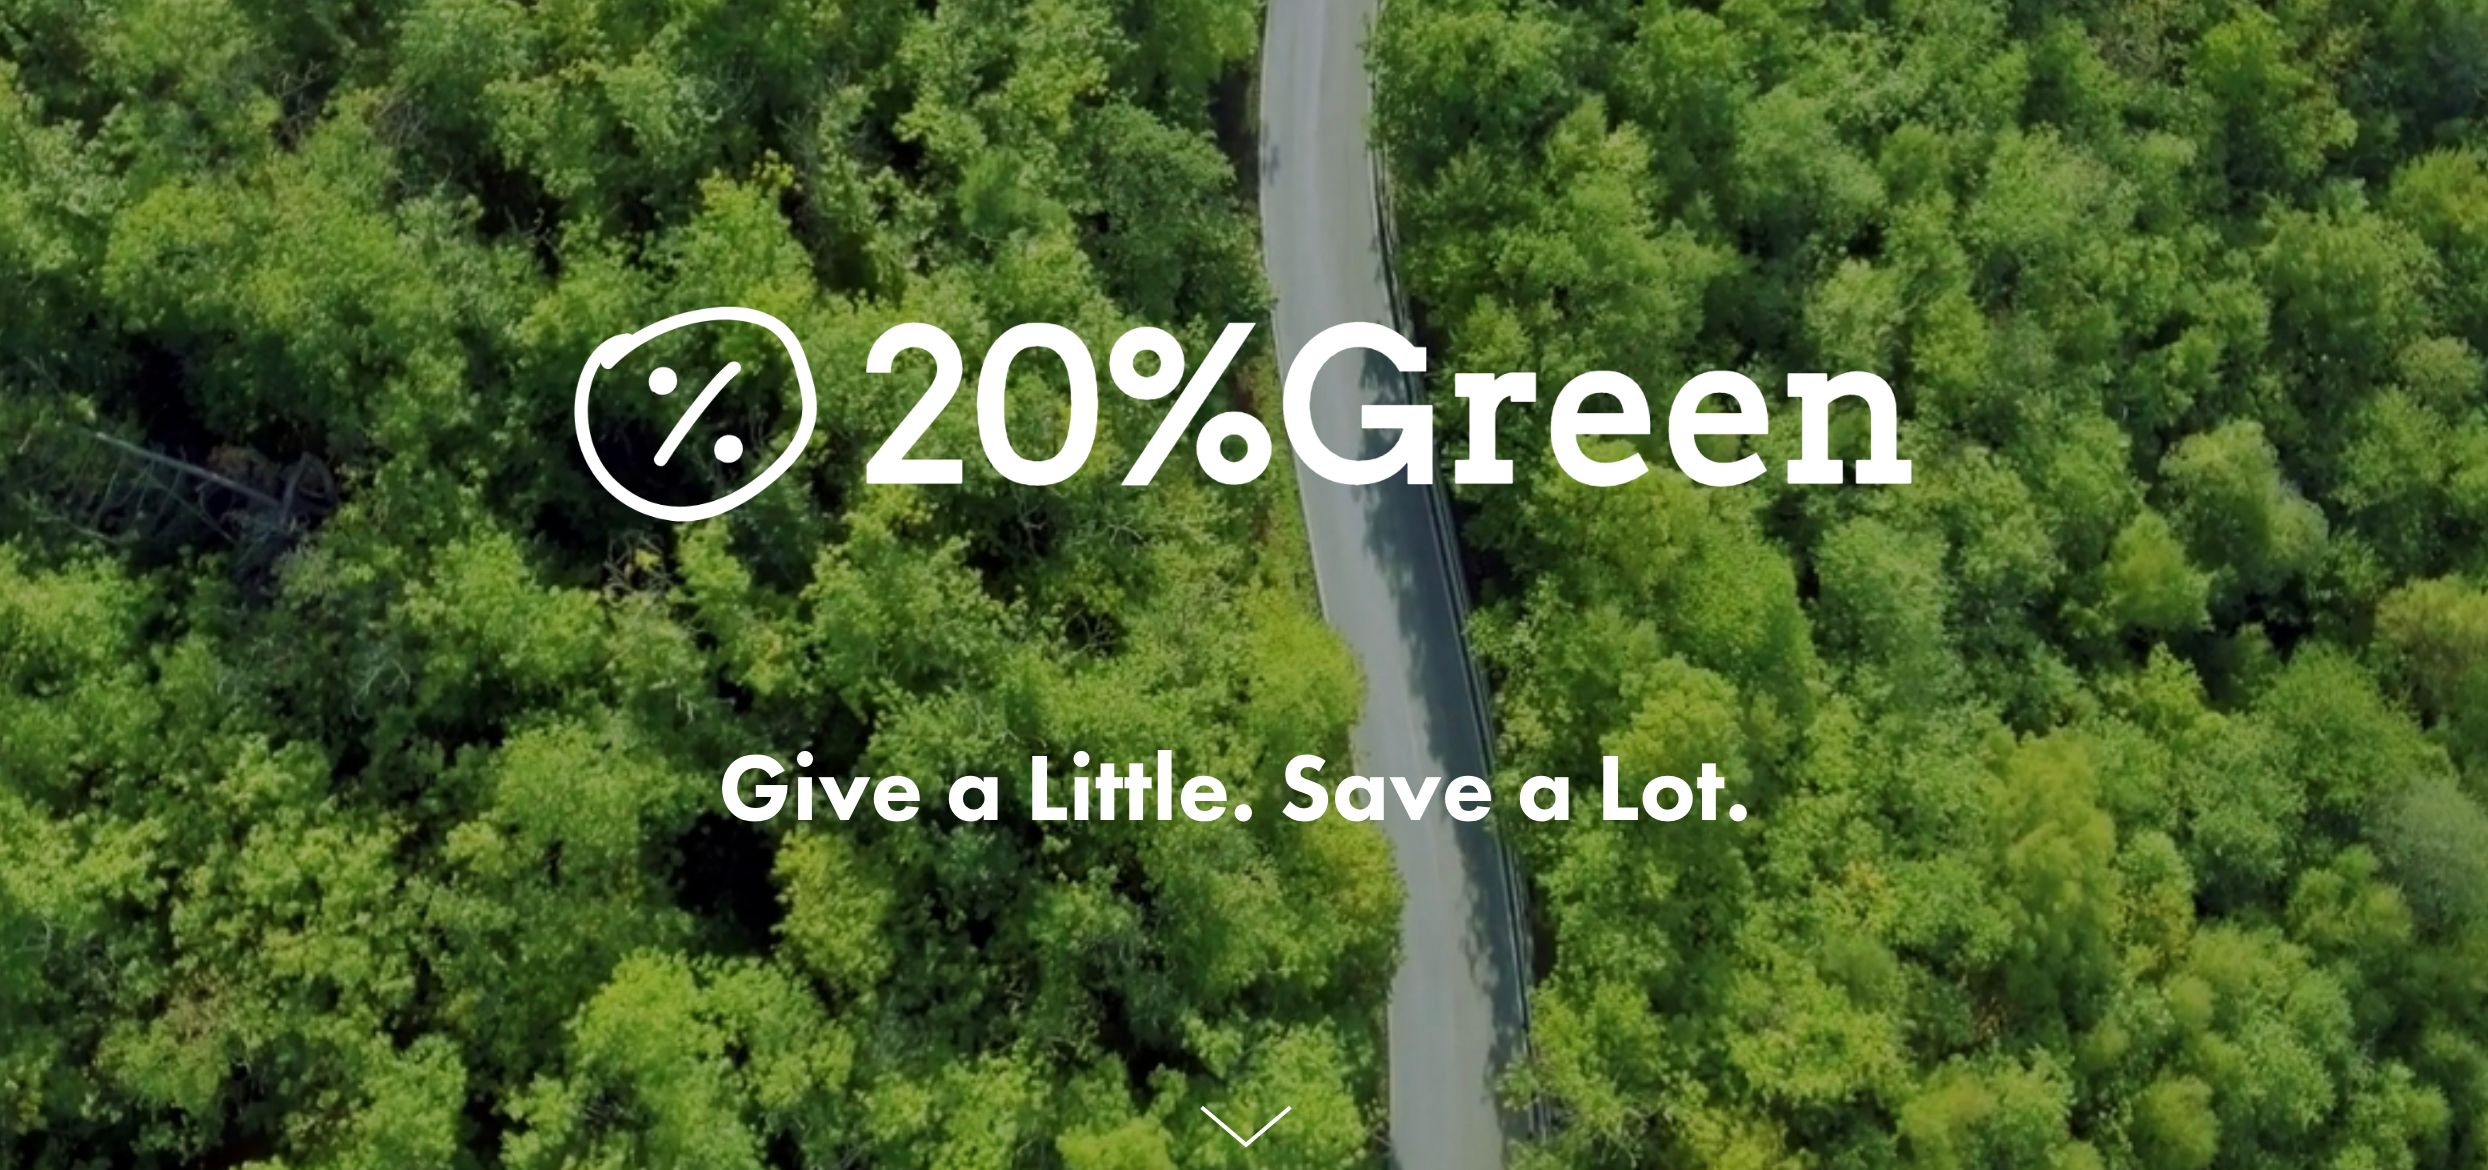 Give a little, save a lot. - 20%Green (www.20percentgreen.com) is a pro bono creative talent platform to help kick start new green ideas and support current ones. Using the spirit of Google's 80/20 innovation time rule - but applying it to our free time instead of work time - we want to encourage creative talent to give 20% of their non-work time to a green project.